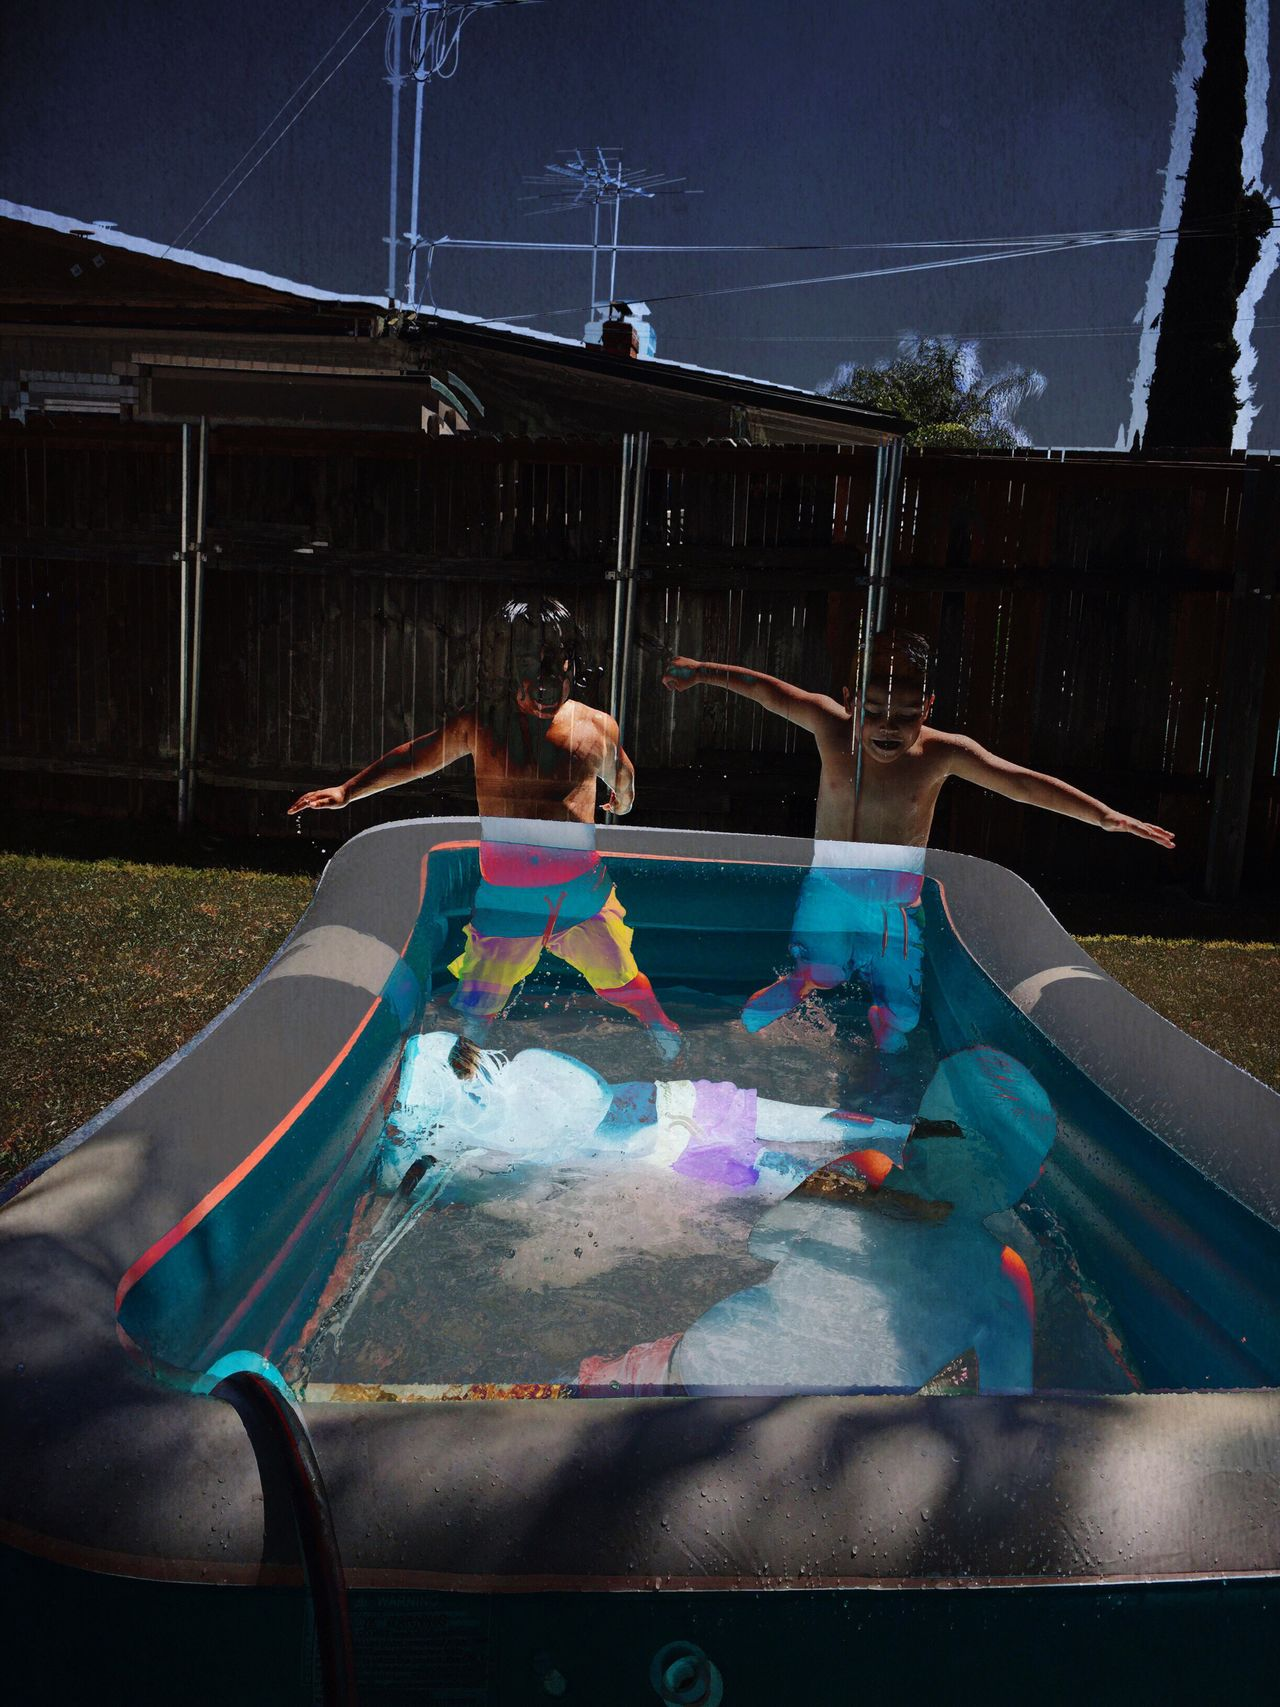 Wonder boys One Person Real People Jumping Swimming Pool Shirtless Water Outdoors Night People Sky Adult Young Adult Building Exterior Boys Fun Summer Joy Double Exposure Cut And Paste Cut And Paste EyeEmNewHere The Week On EyeEm Art Is Everywhere The Great Outdoors - 2017 EyeEm Awards The Photojournalist - 2017 EyeEm Awards Live For The Story Live For The Story